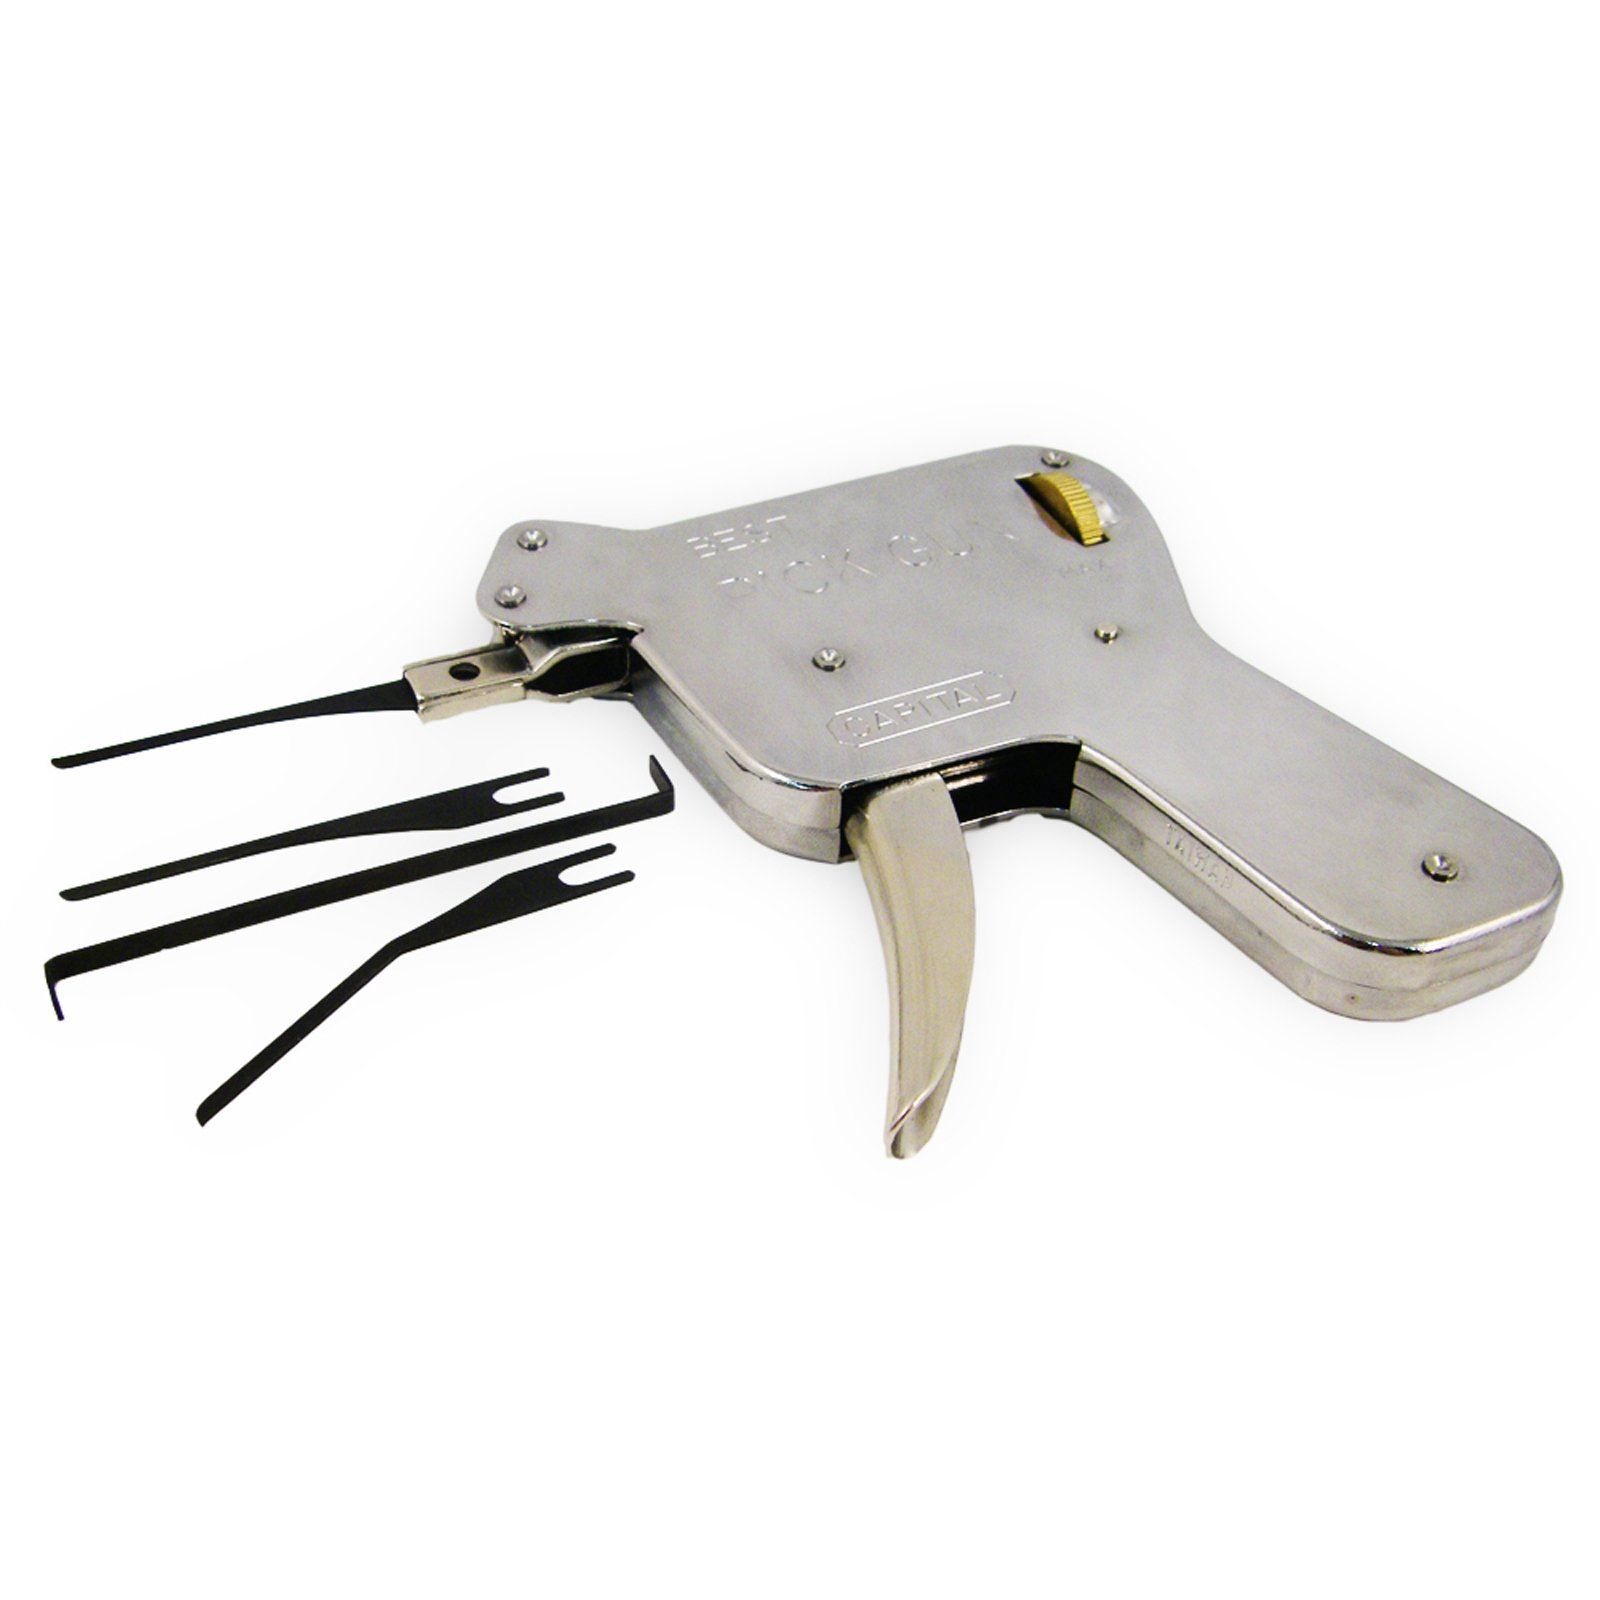 Complete DIY Lock Pick Gun - Self Service Tool Kit